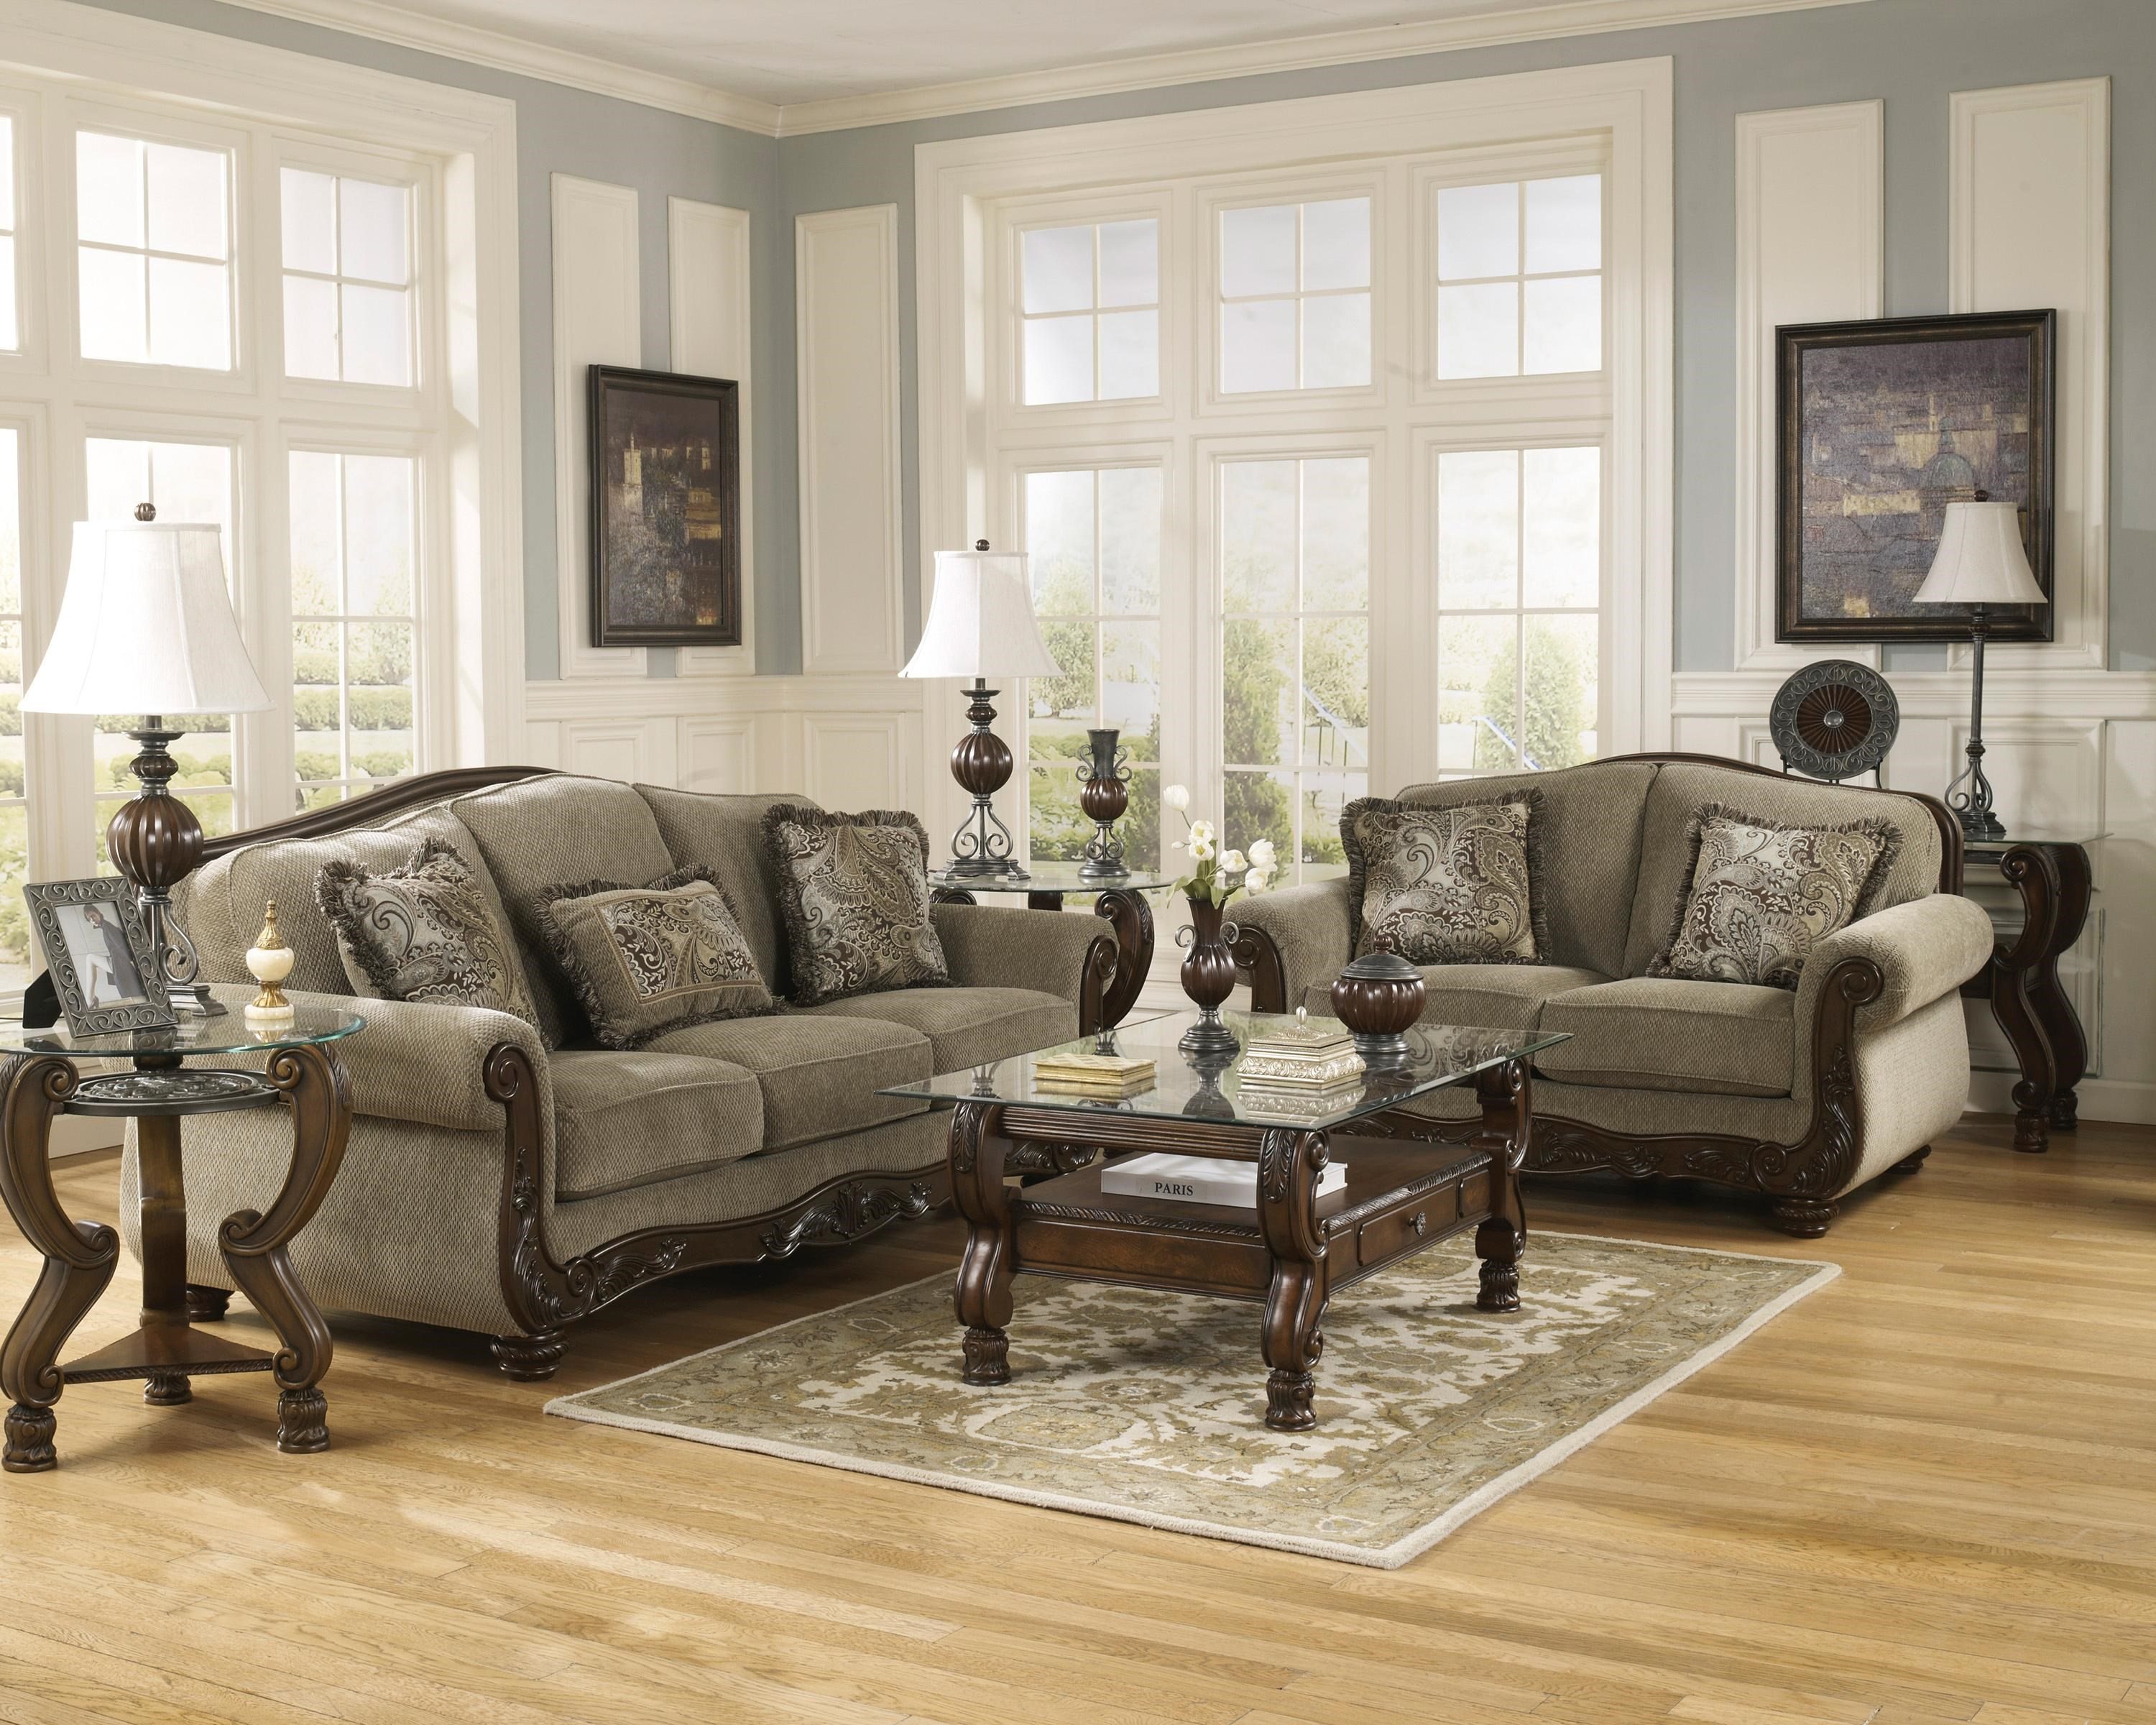 Signature Design by Ashley Martinsburg Meadow Sofa